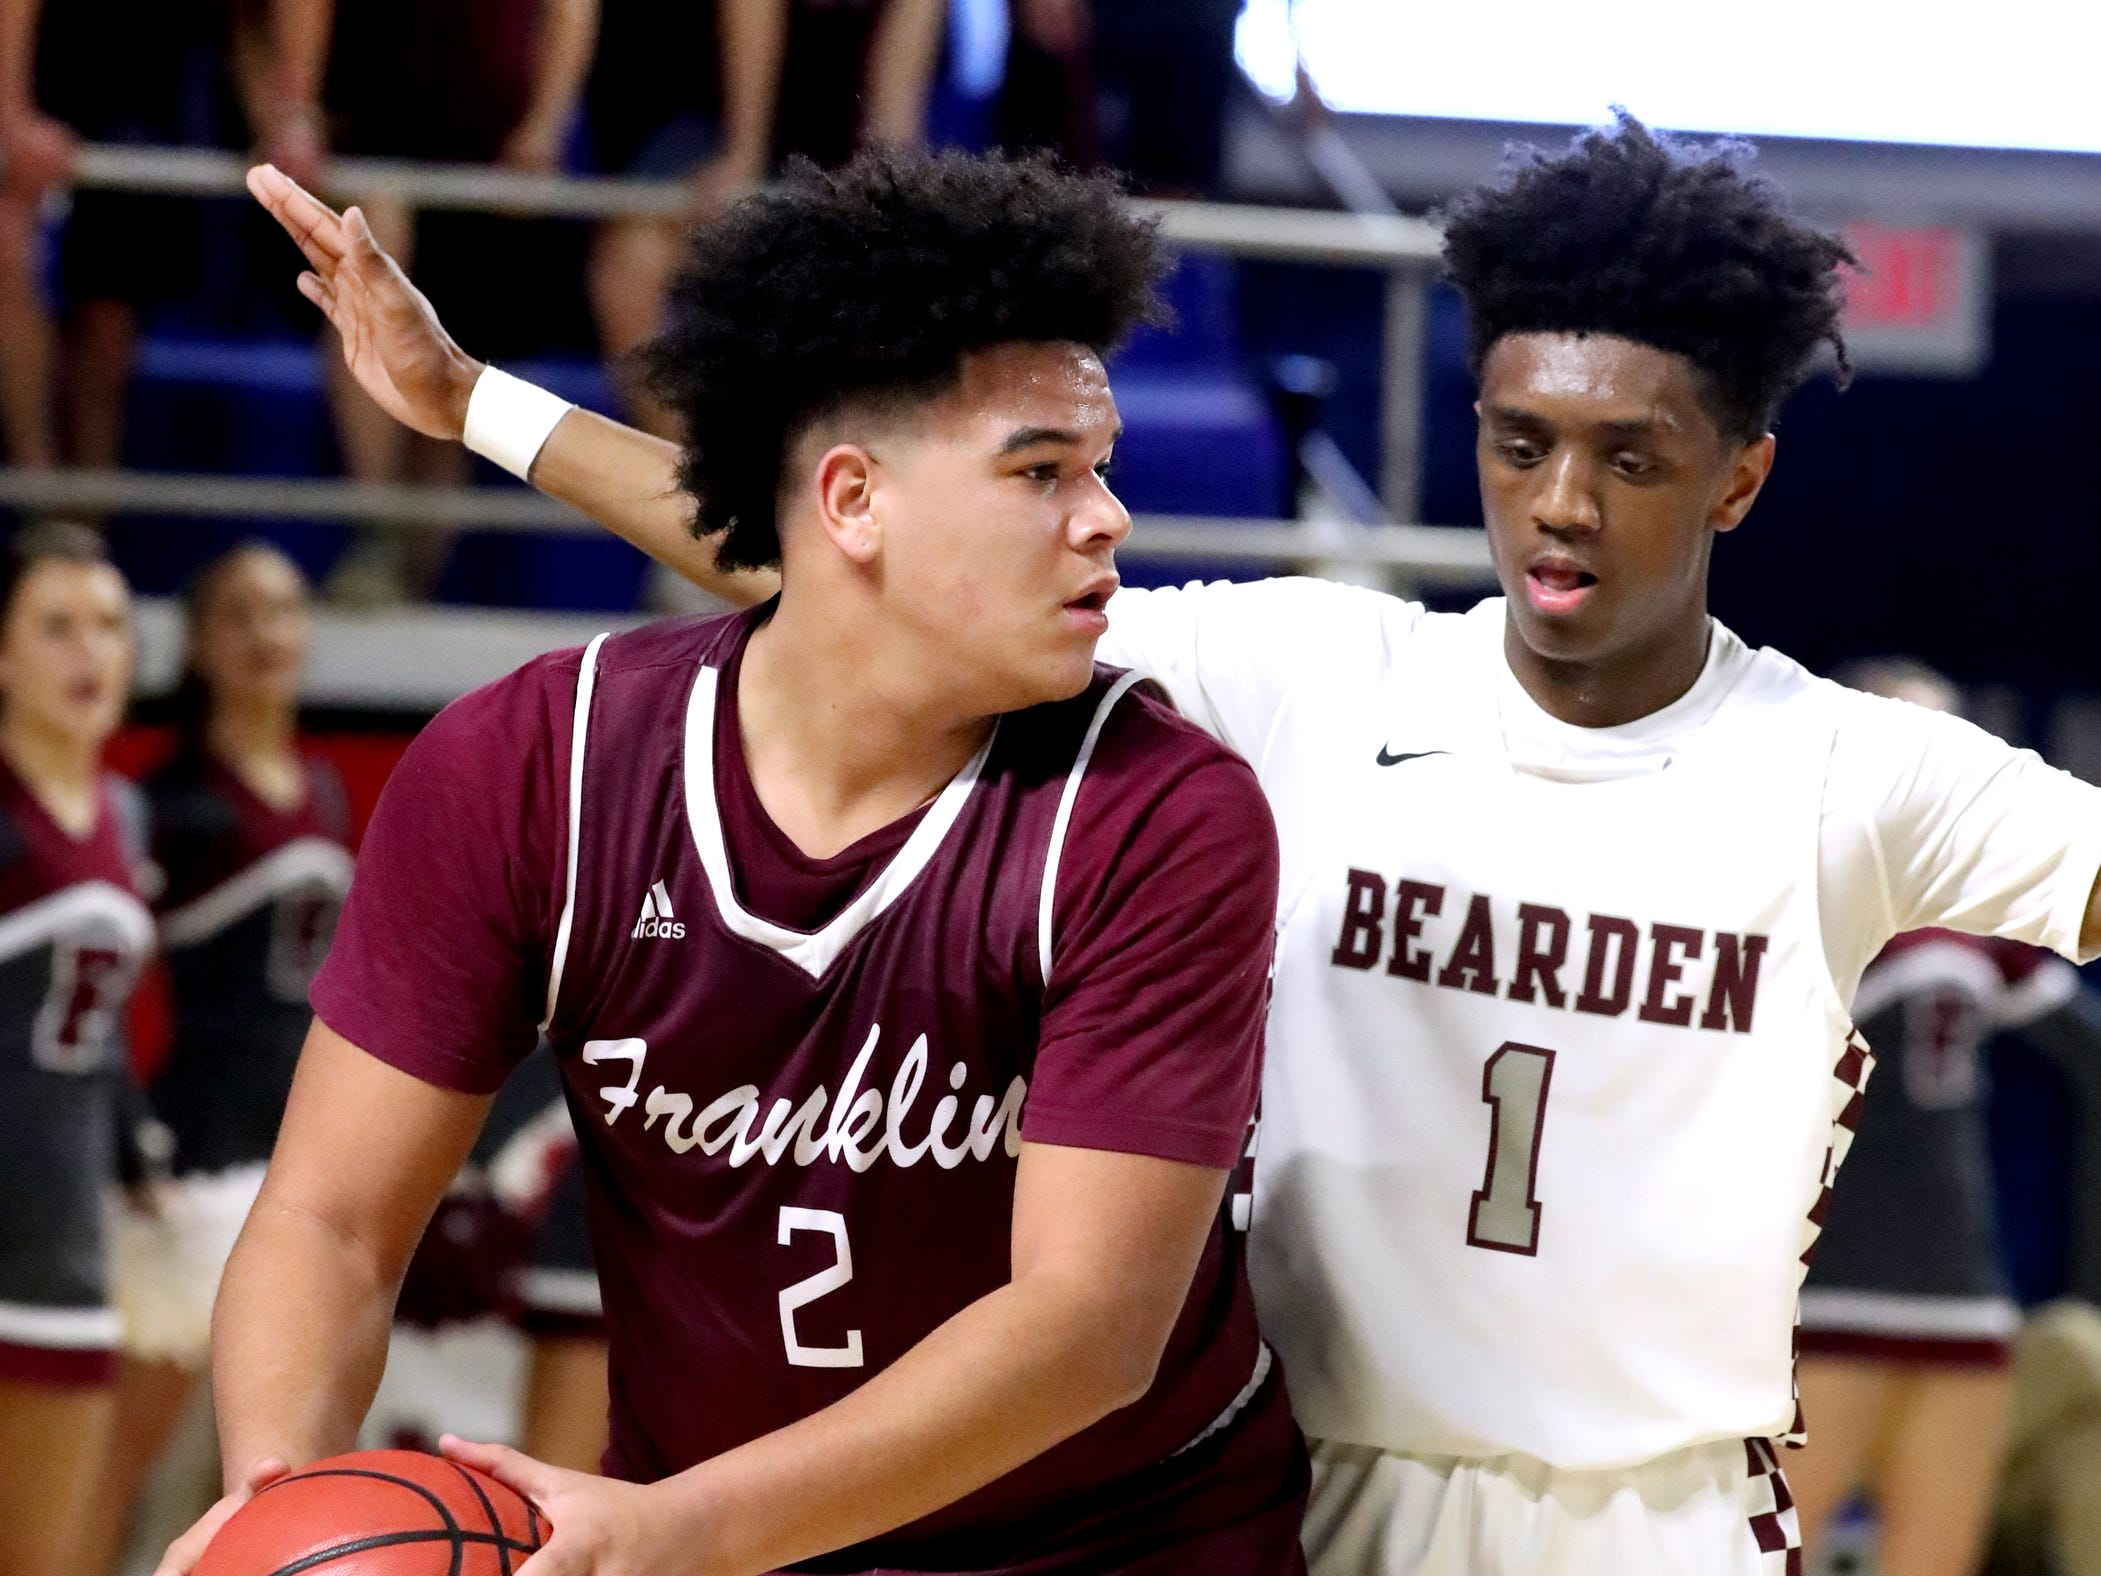 Franklin's Ahsharri Haynesworth (2) looks for a player to pass to as Bearden's Trent Stephney (1) guards him during the quarterfinal round of the TSSAA Class AAA Boys State Tournament, on Wednesday, March 13, 2019, at Murphy Center in Murfreesboro, Tenn.